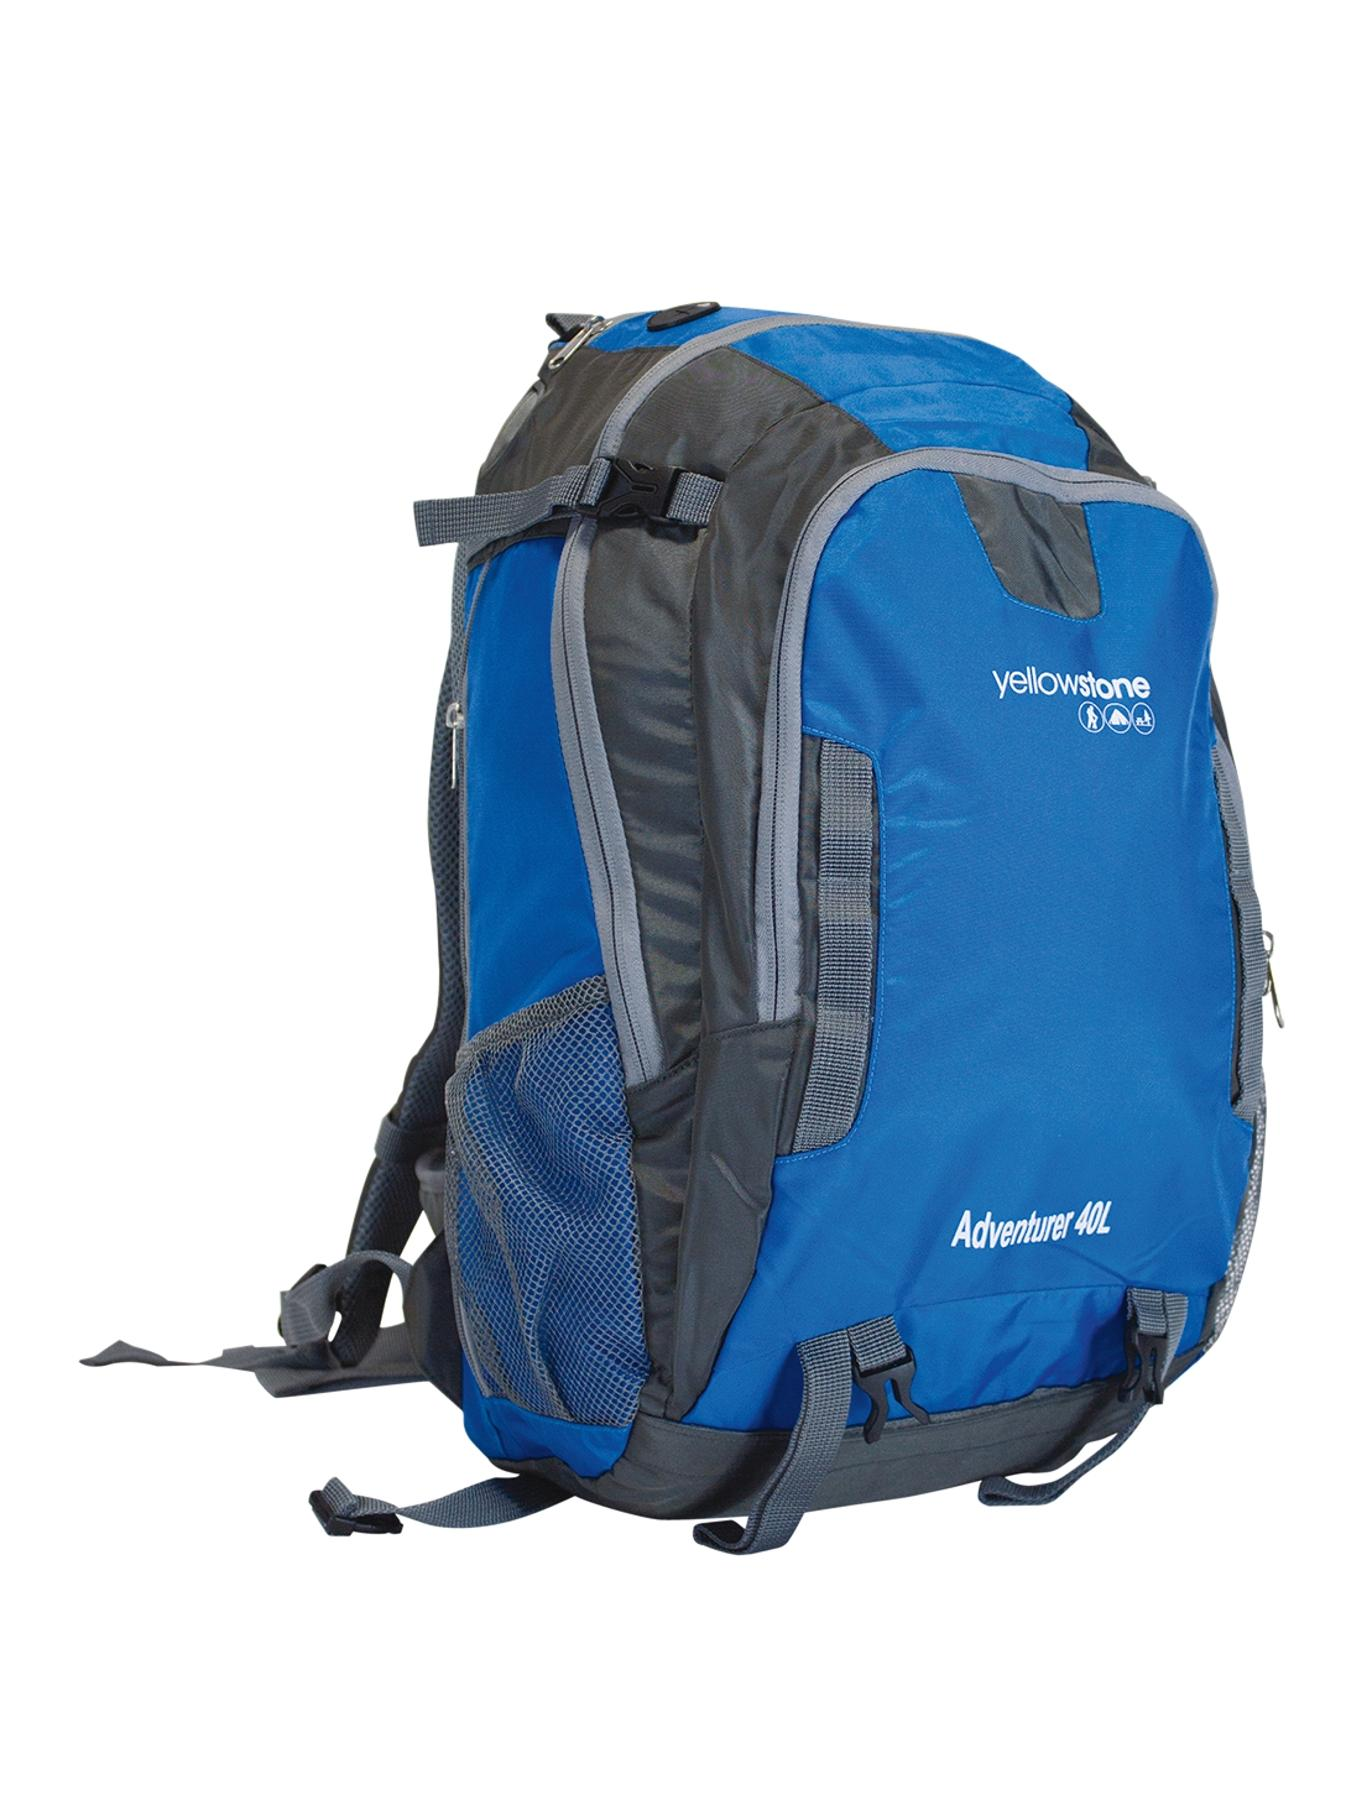 Adventure 40-Litre Ruck Sack - Blue/Grey